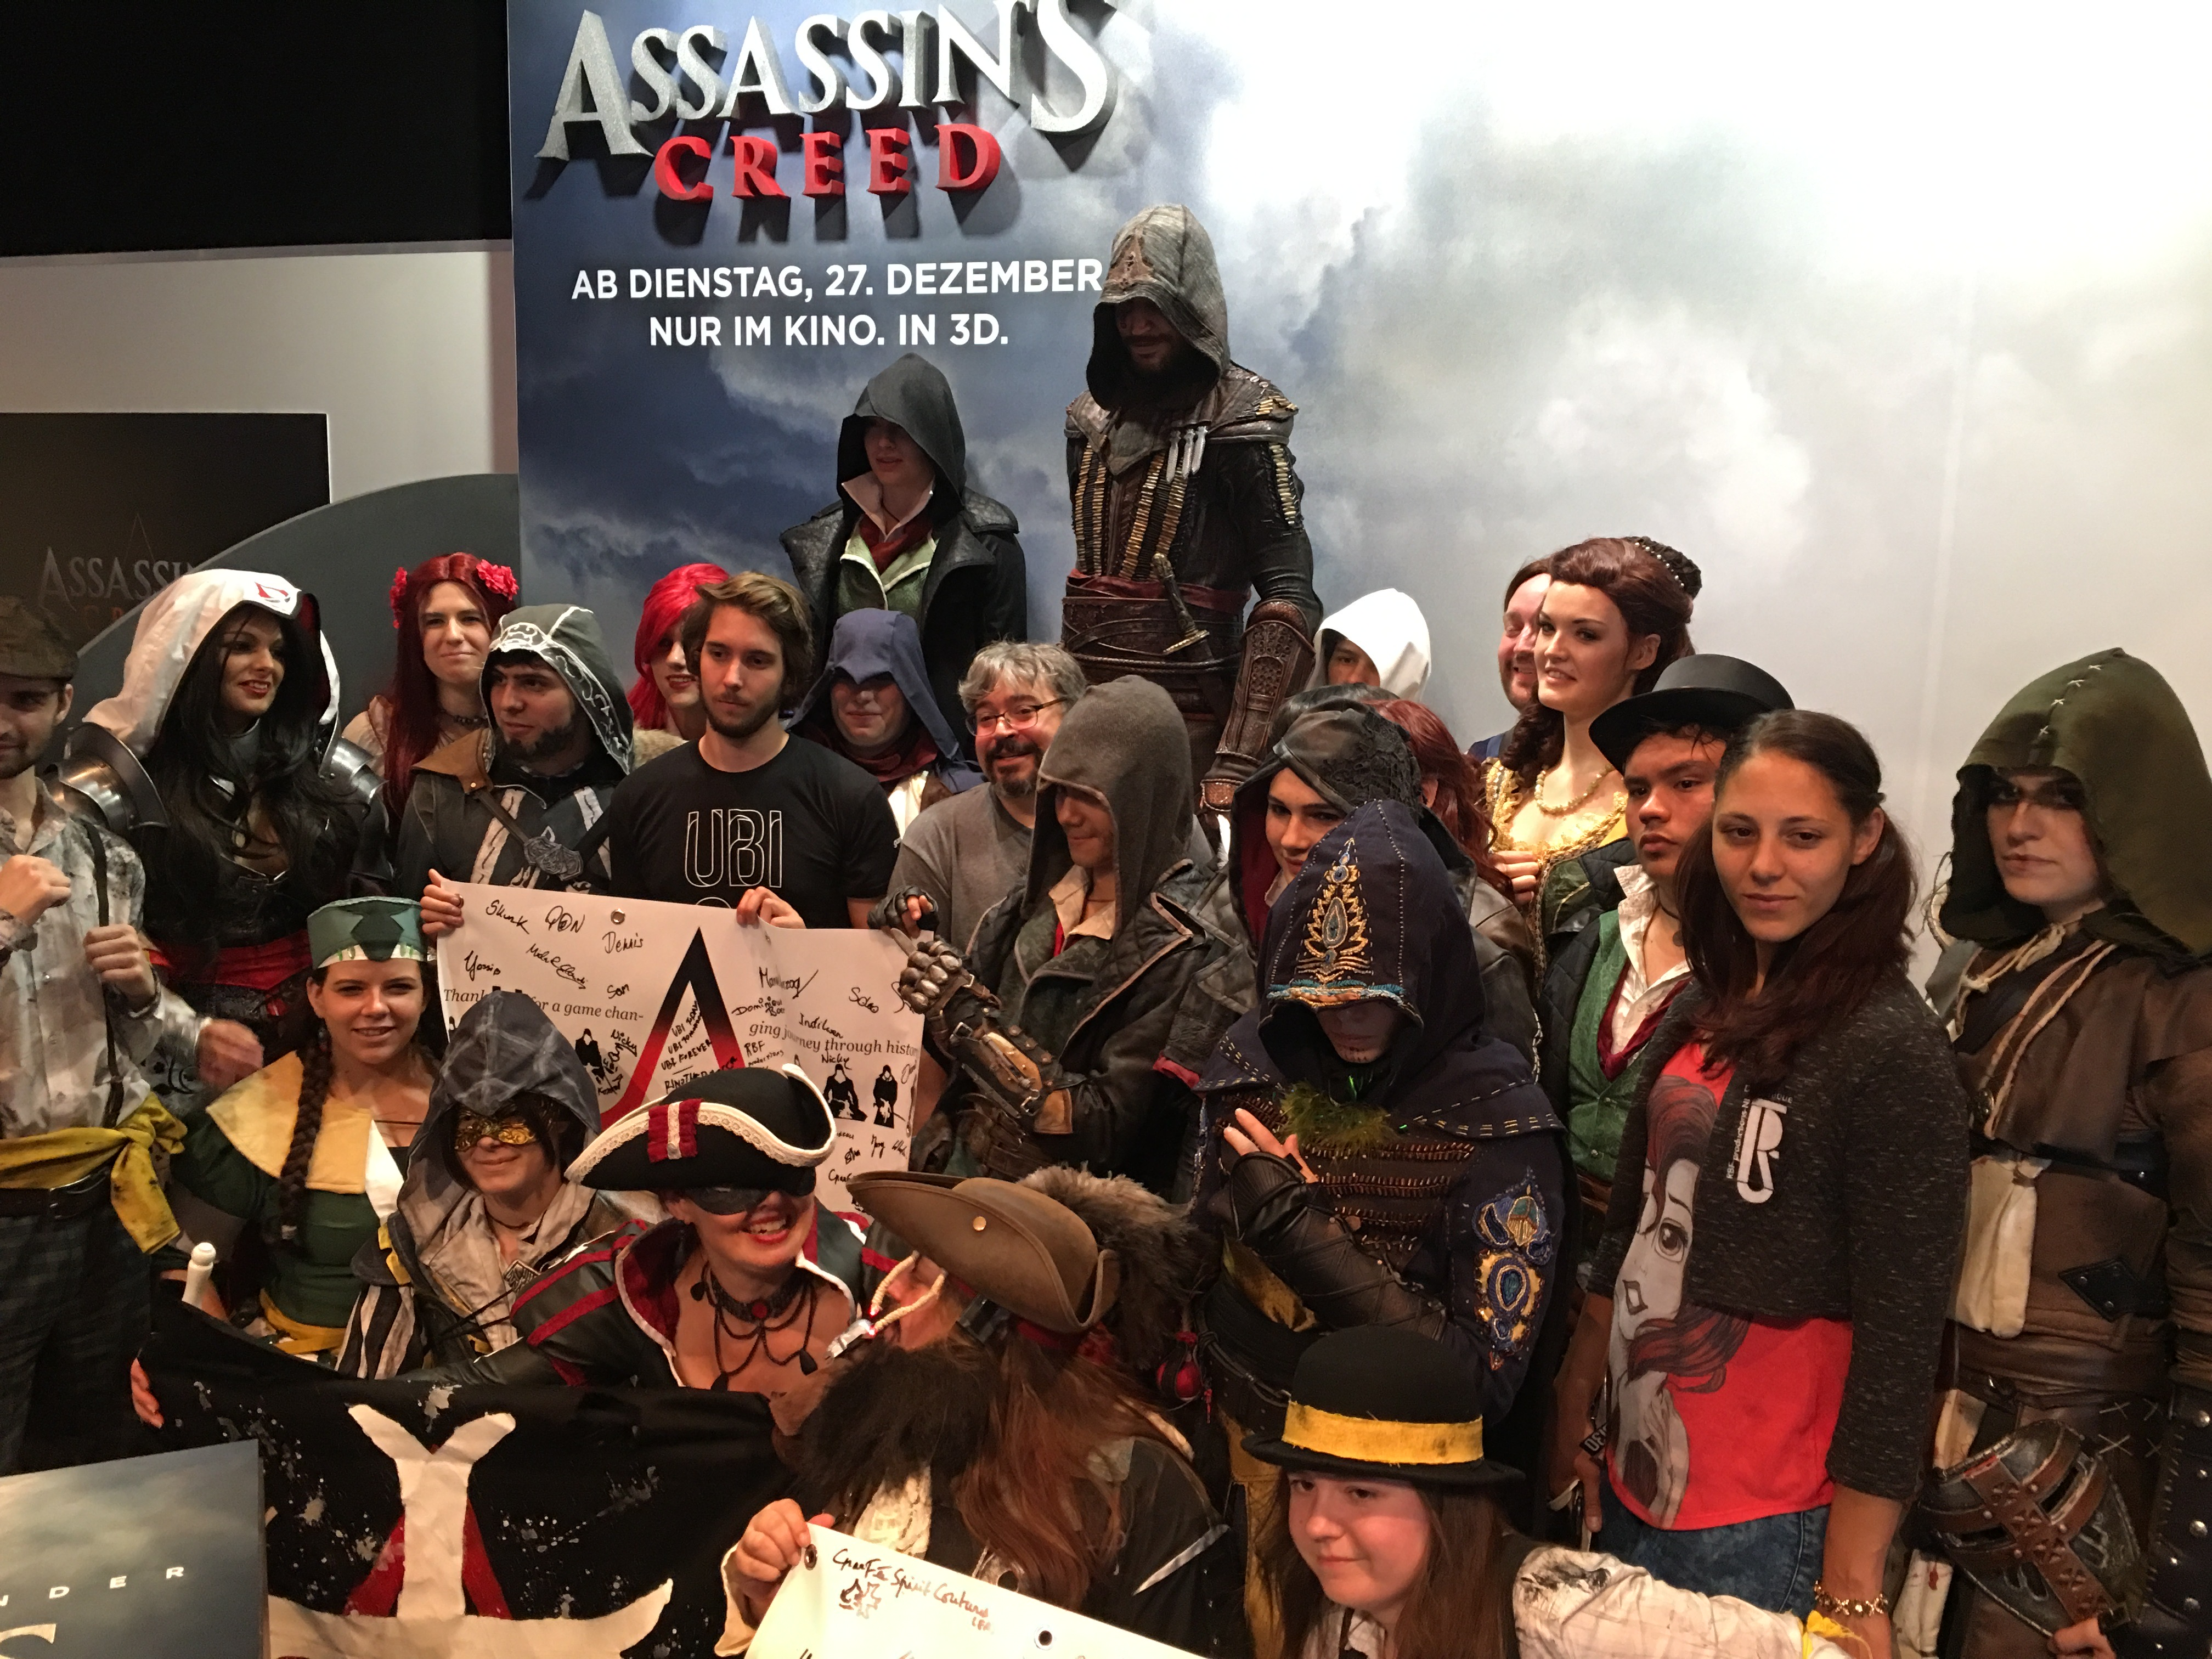 Assassin's Creed Cosplayers